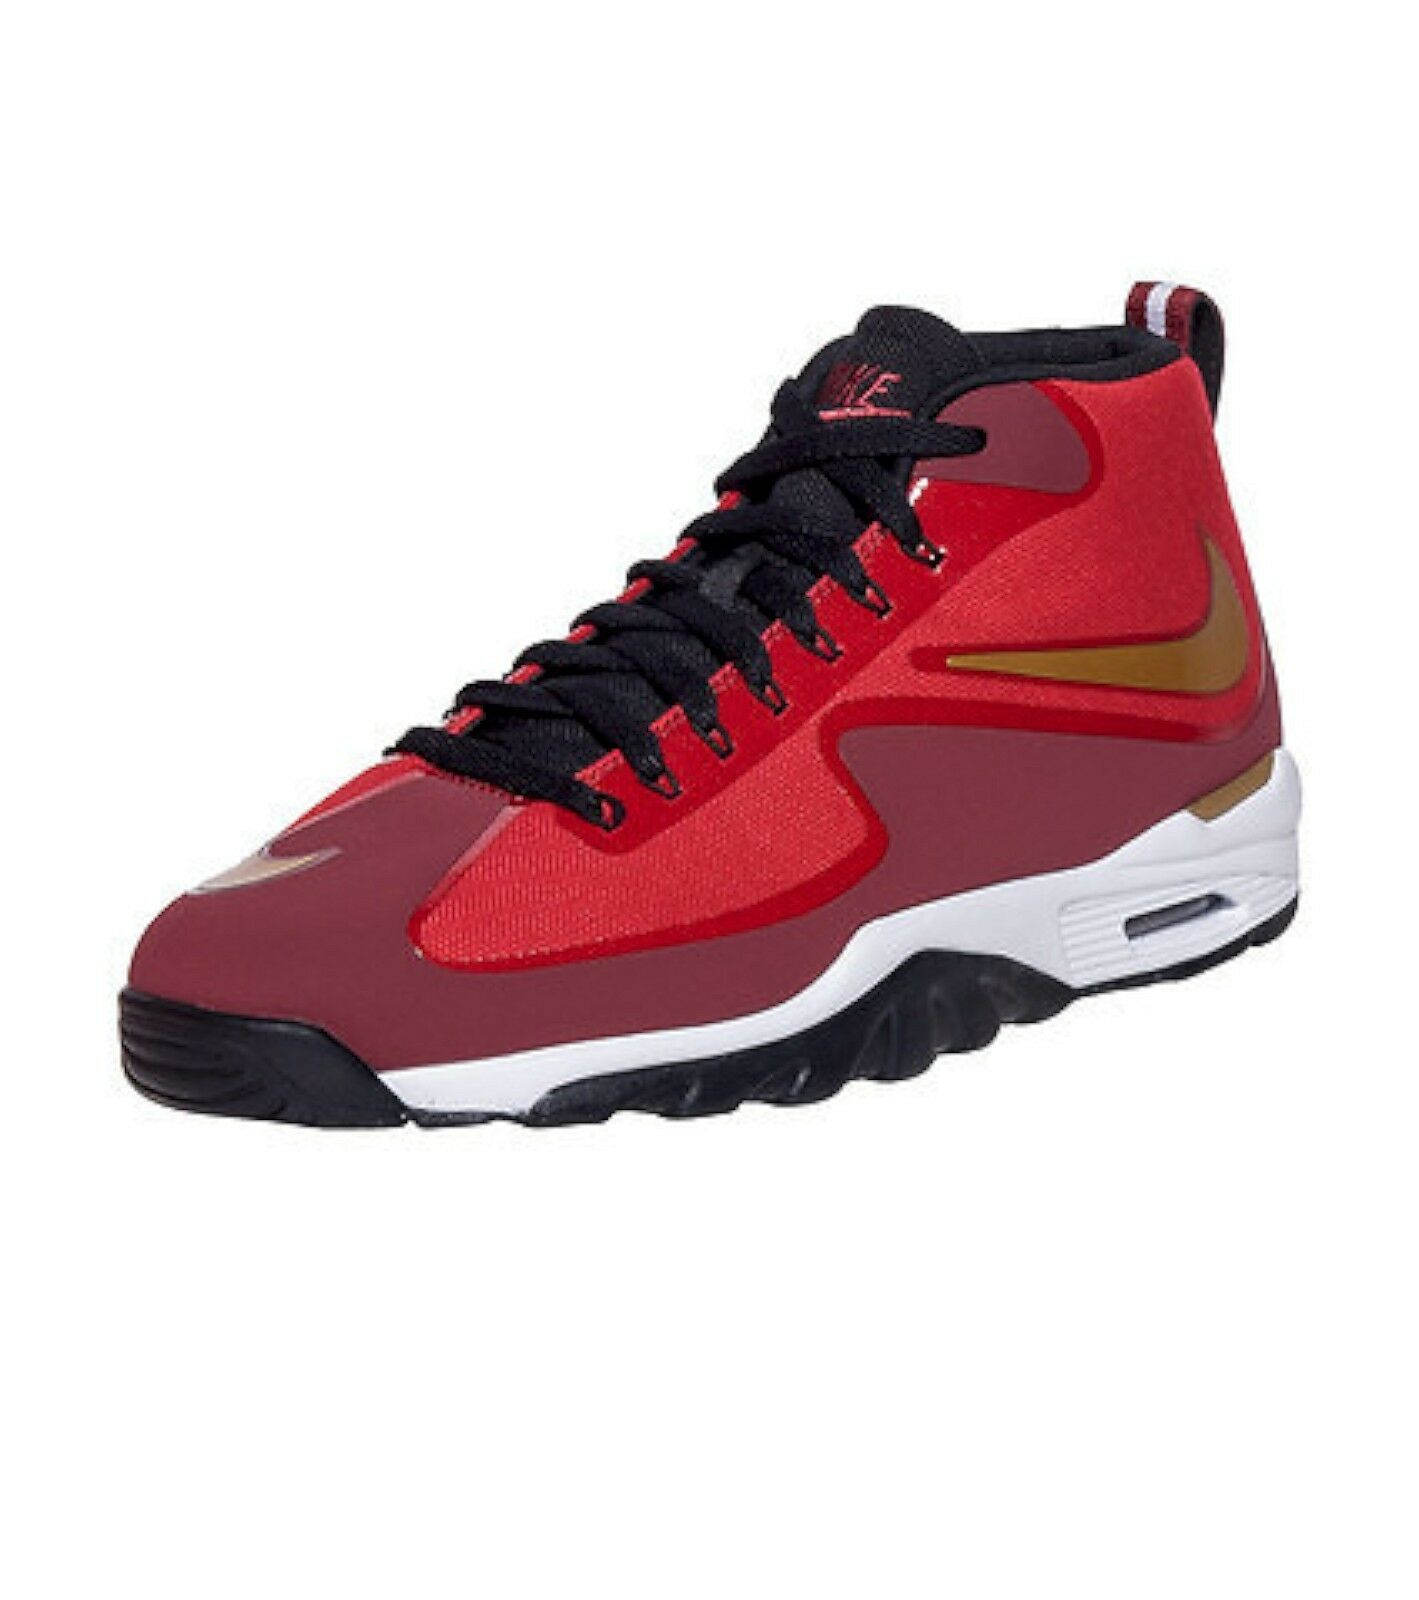 NEW VAPOR GENUINE Nike Mens Size 11 AIR UNTOUCHABLE VAPOR NEW Running Shoes Red 807164-600 ab2008